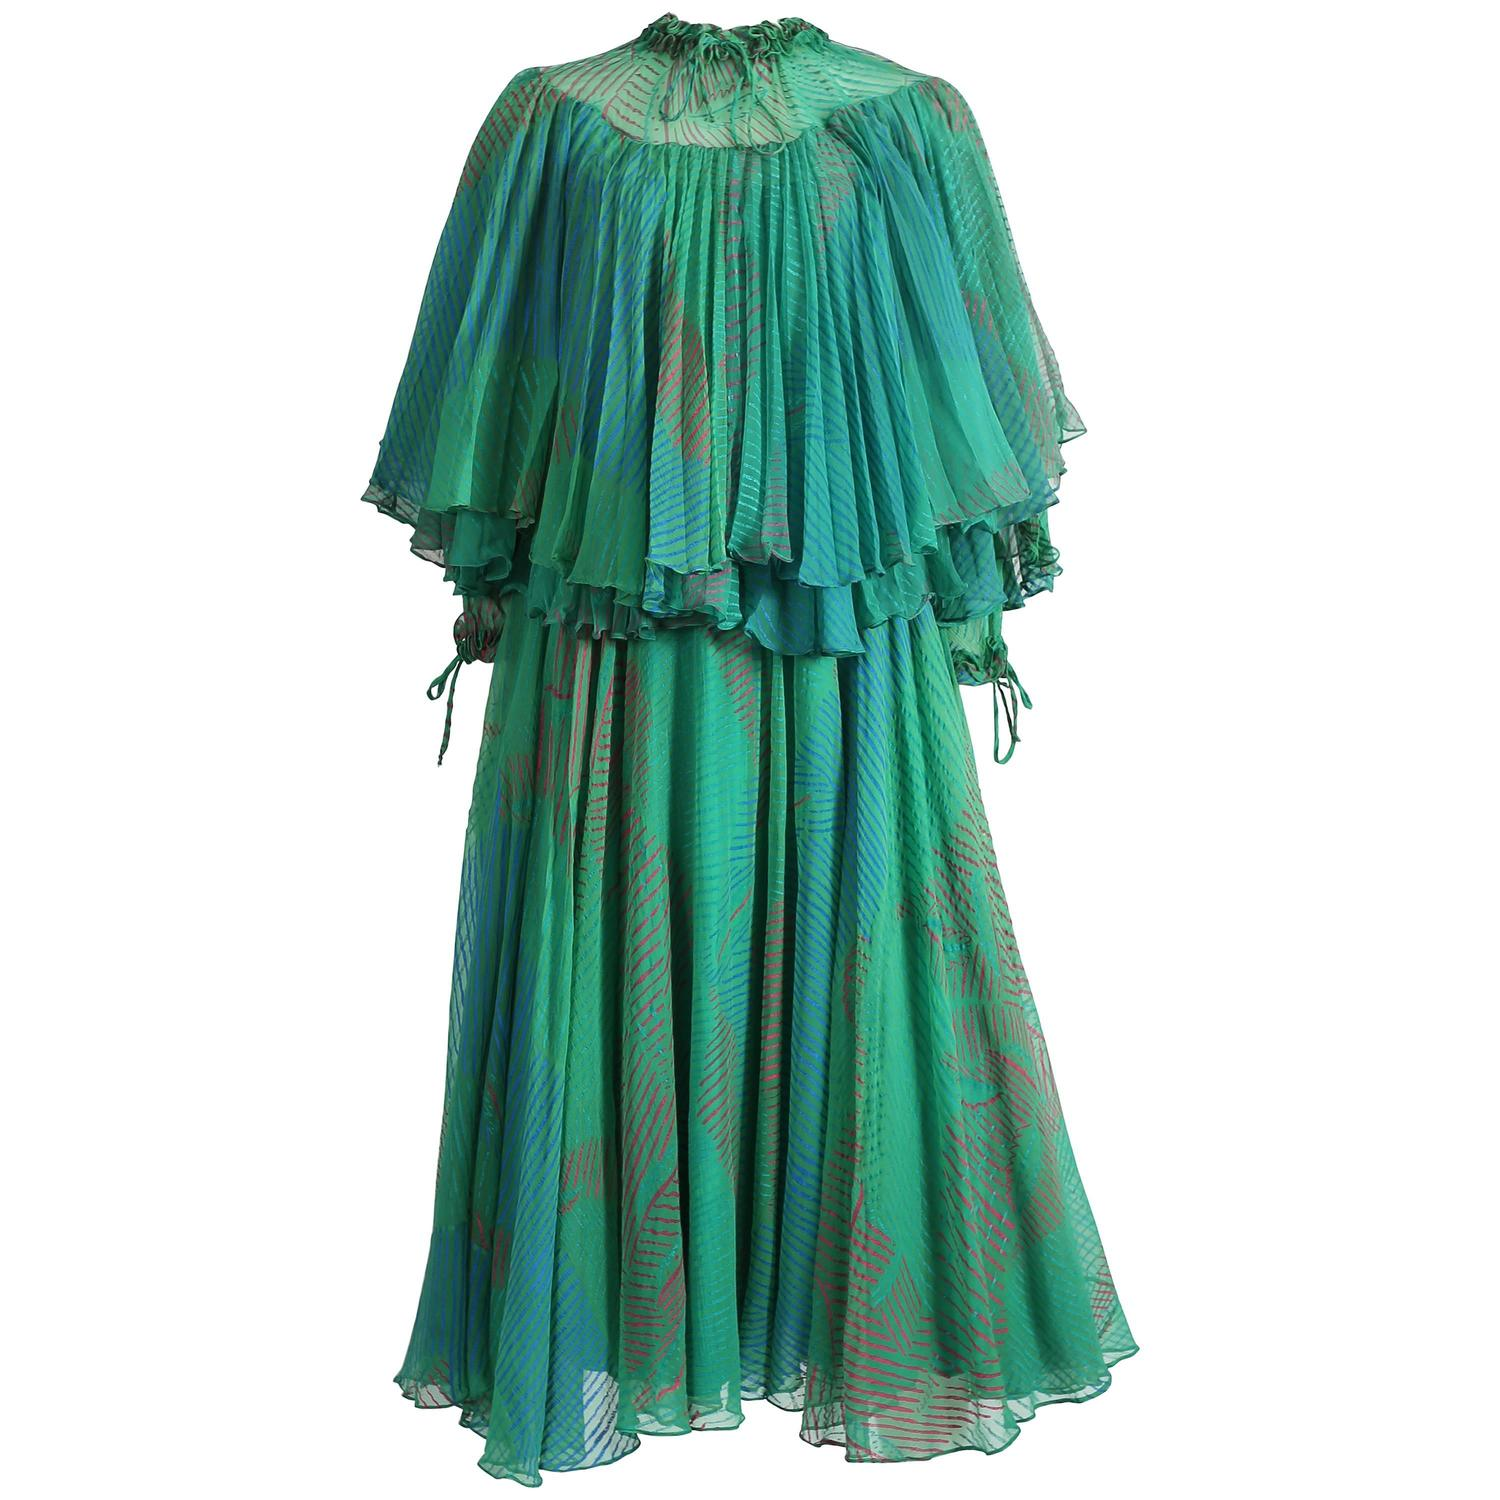 Ossie Clark Celia Birtwell Couture Silk Chiffon Screen Print Dress Circa 1976 For At 1stdibs